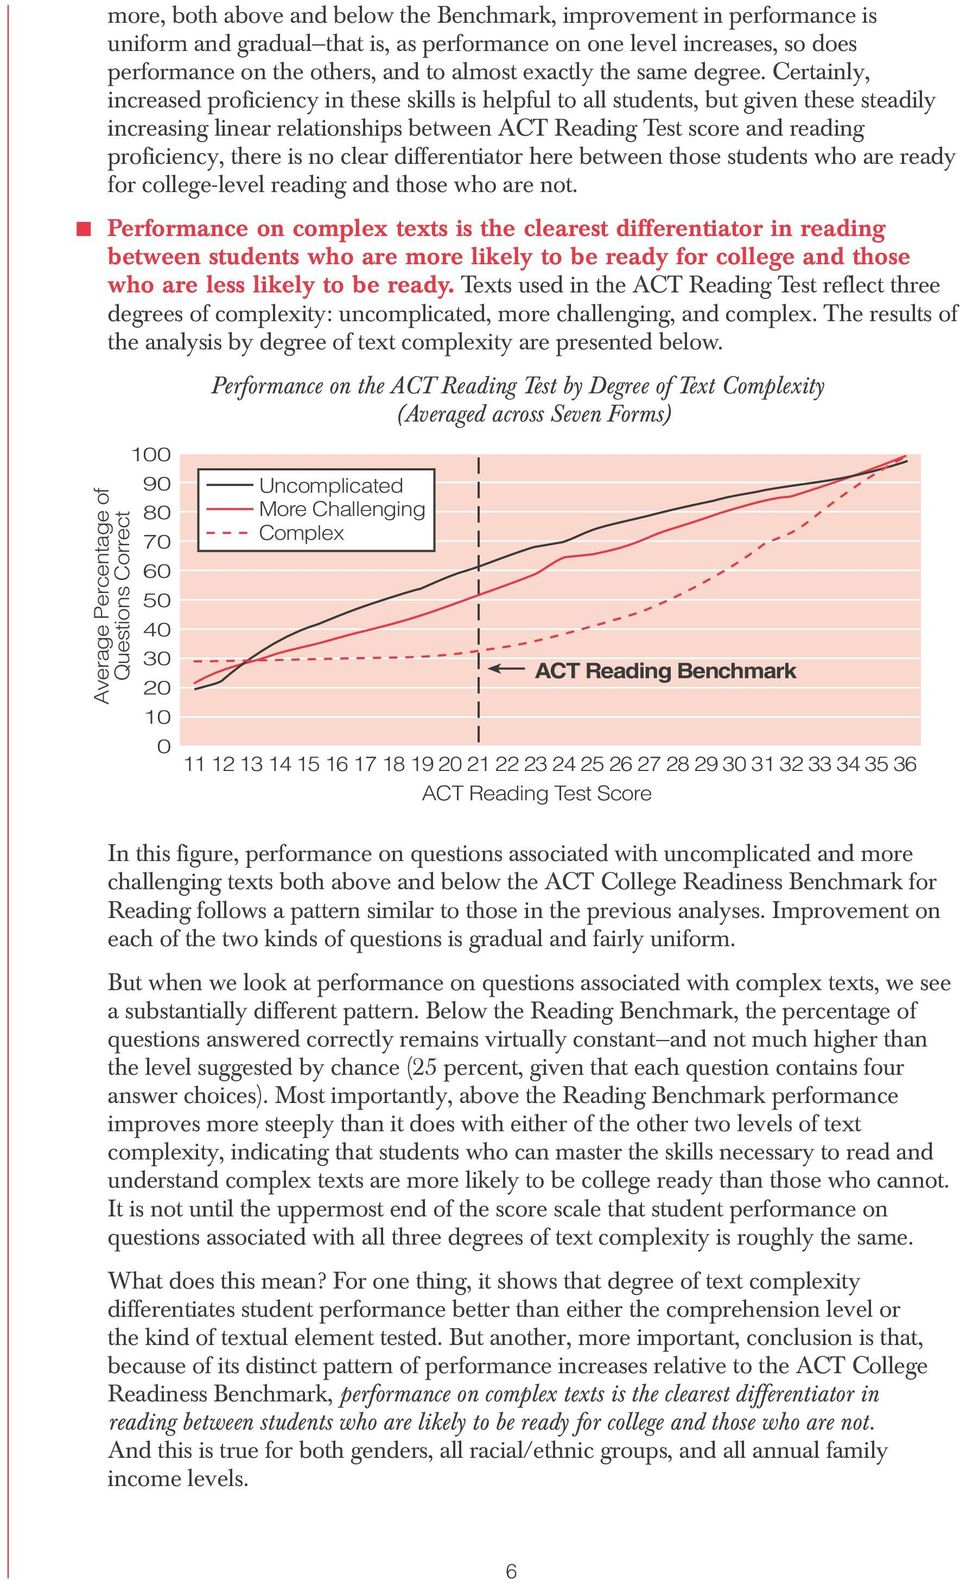 Certainly, increased proficiency in these skills is helpful to all students, but given these steadily increasing linear relationships between ACT Reading Test score and reading proficiency, there is